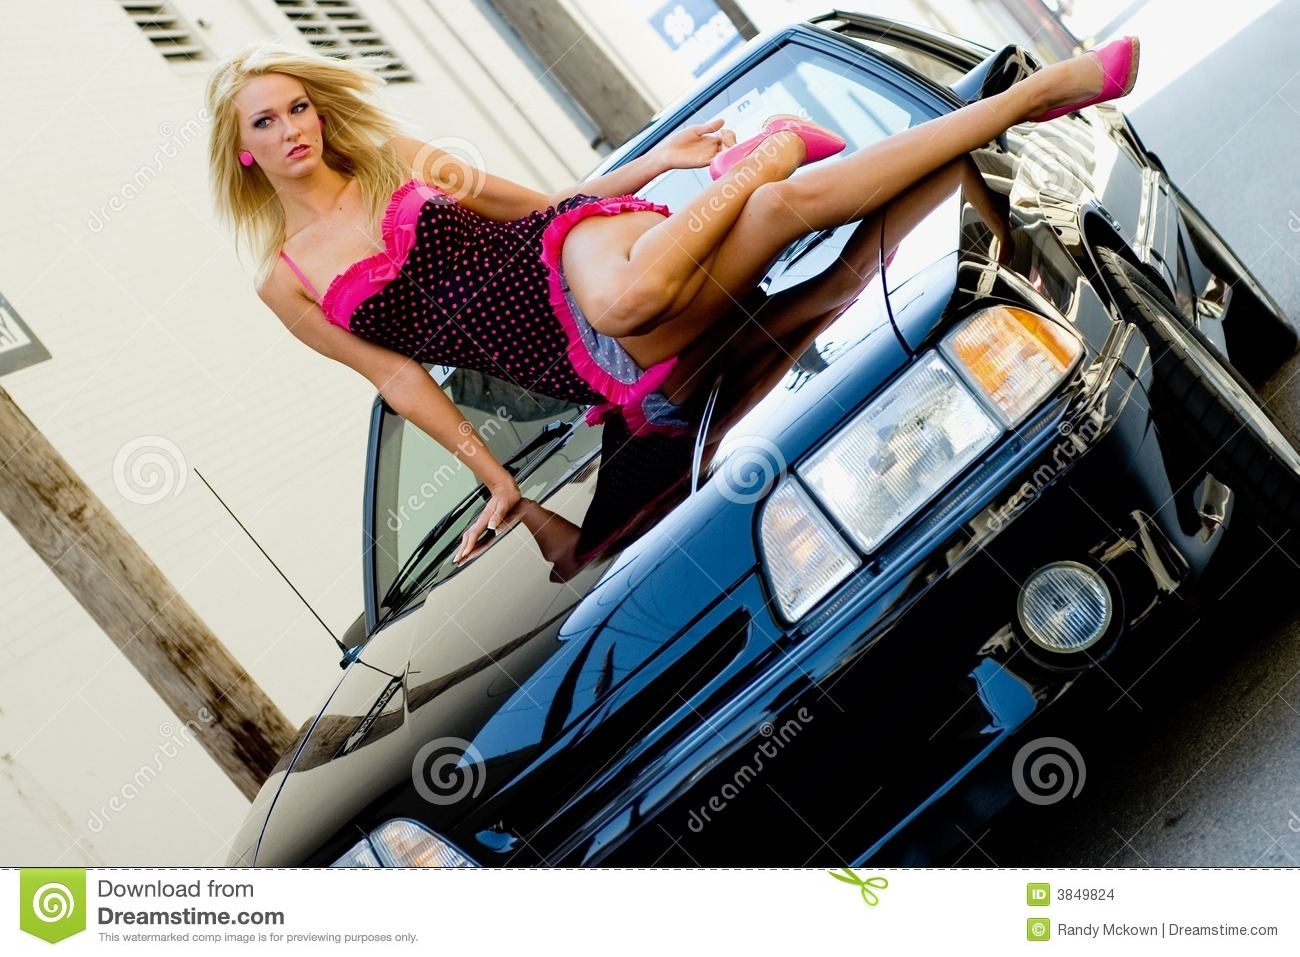 Nude girl with sports car the